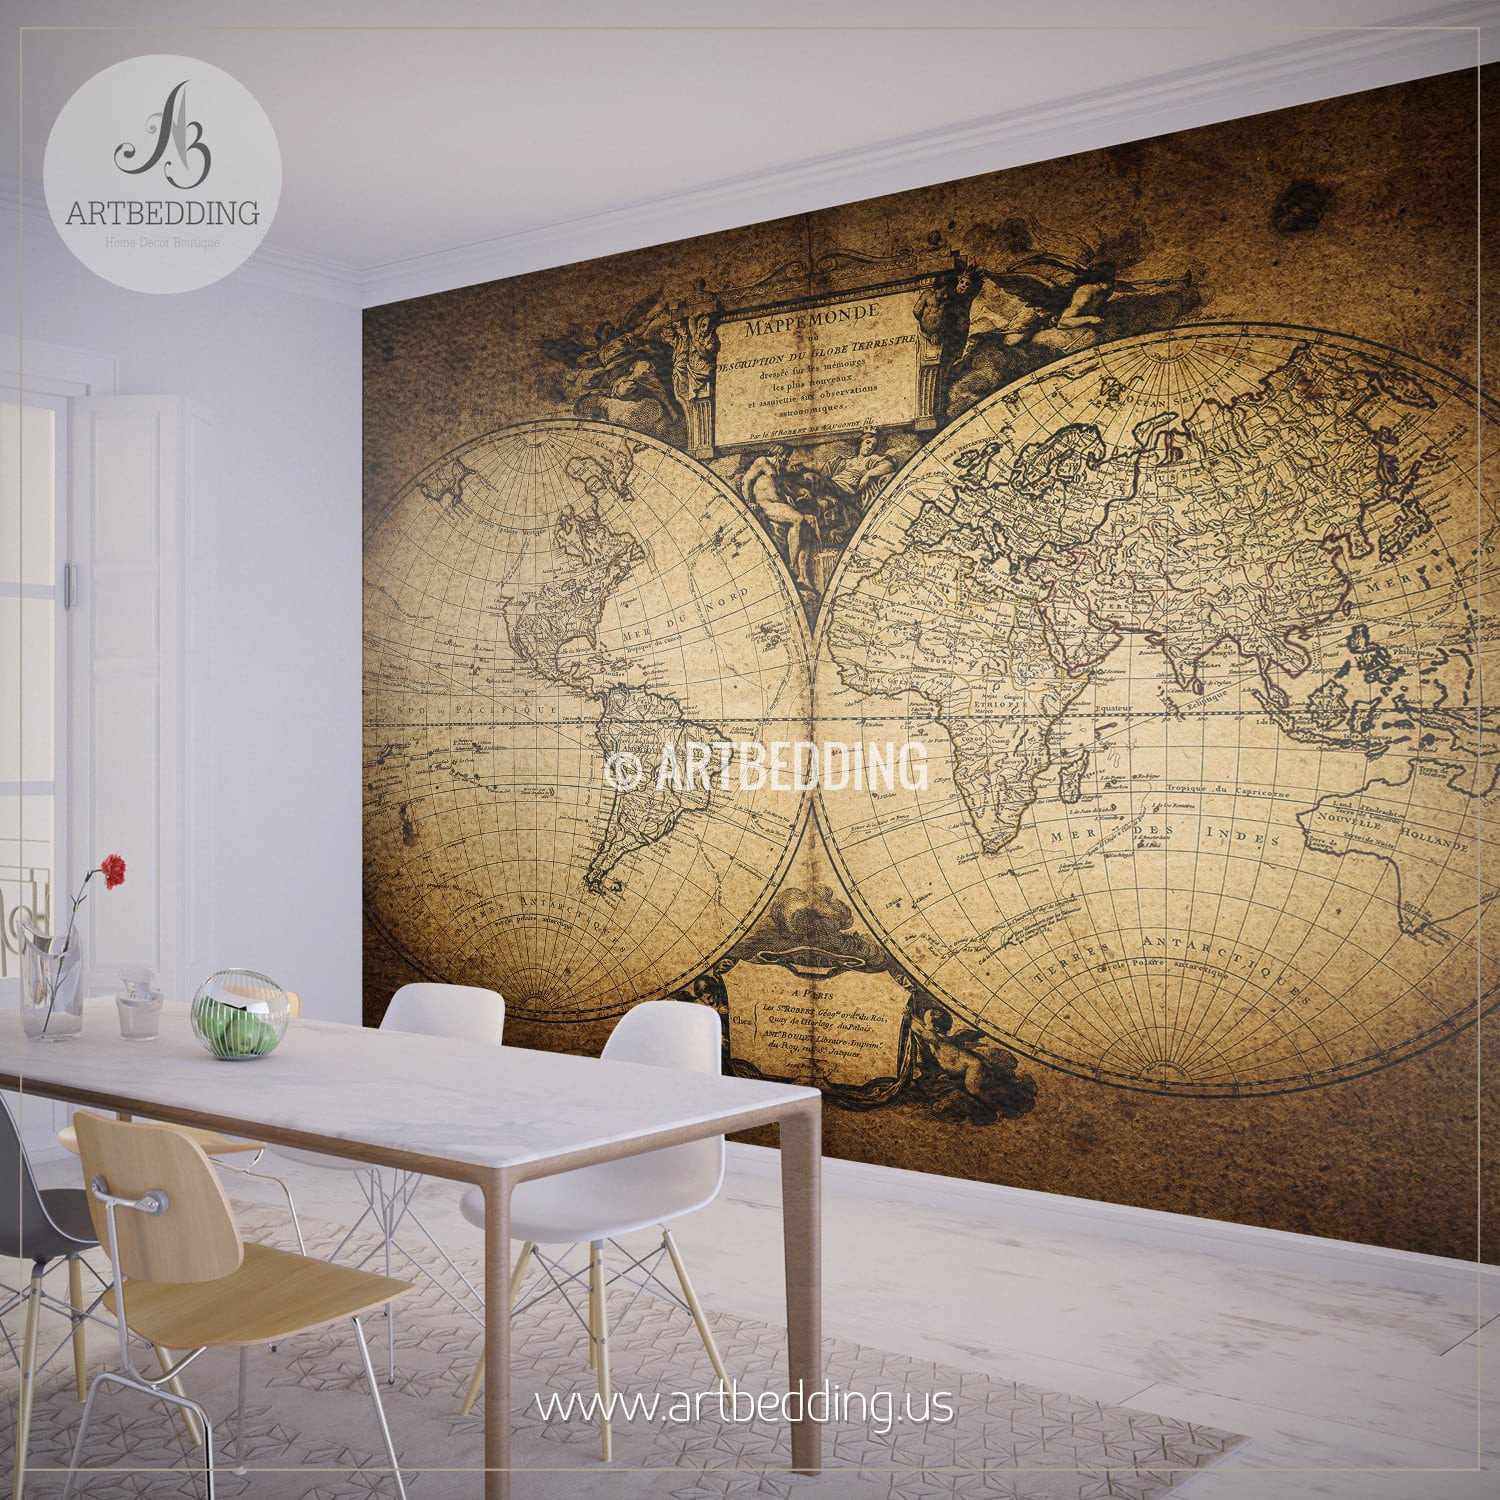 Wallpaper Murals For Bathrooms Vintage World Map 1752 Hemisphere Wall Mural Self Adhesive Peel Stick Photo Mural Atlas Wall Mural Mural Home Decor